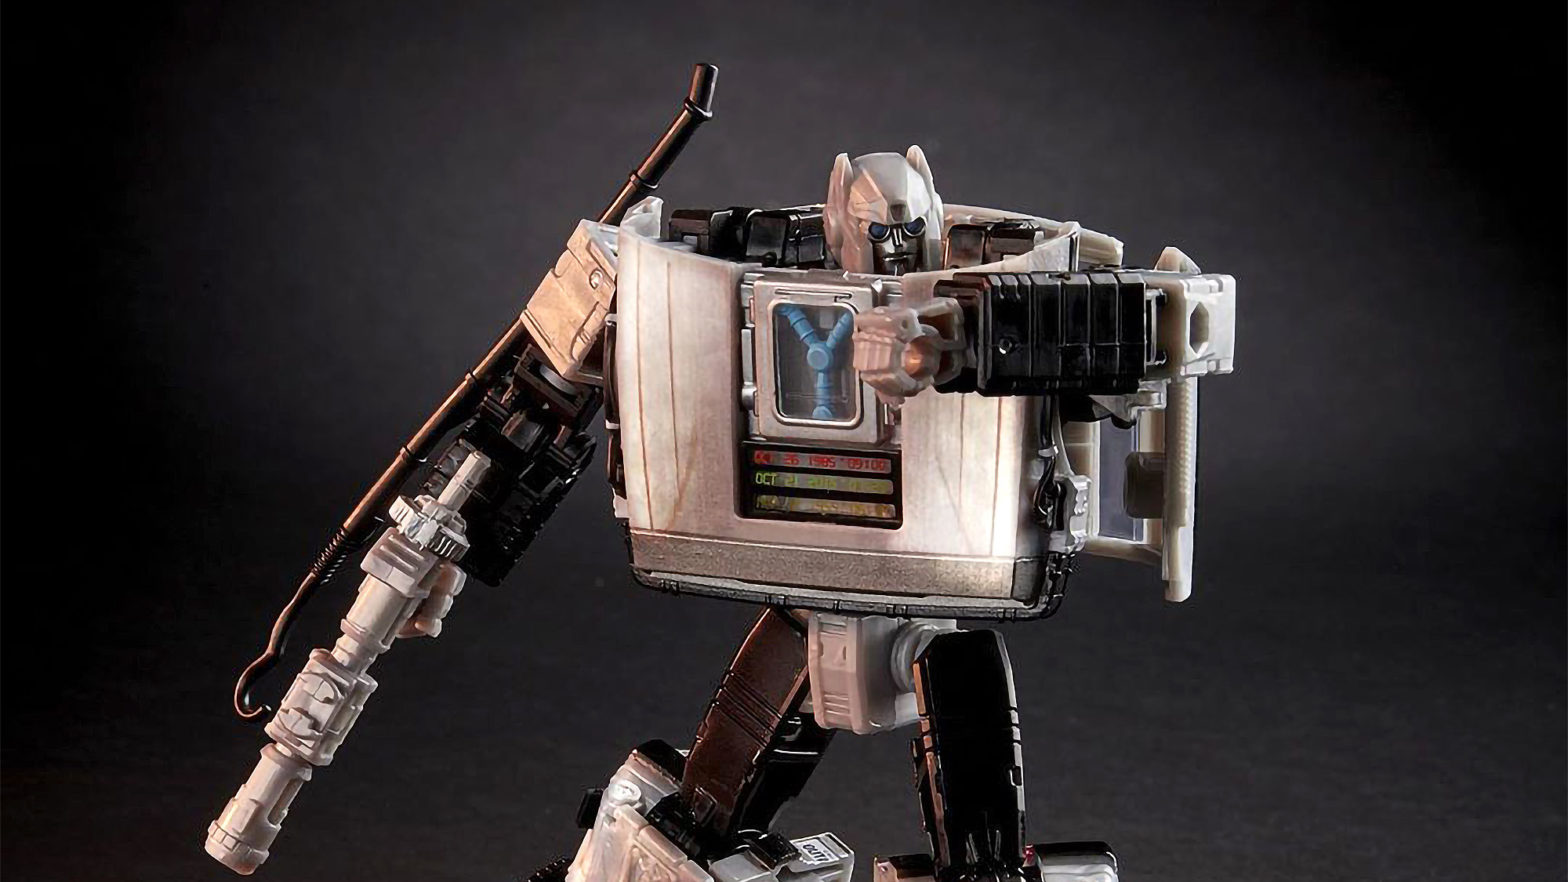 Transformers x Back to the Future Gigawatt Toy